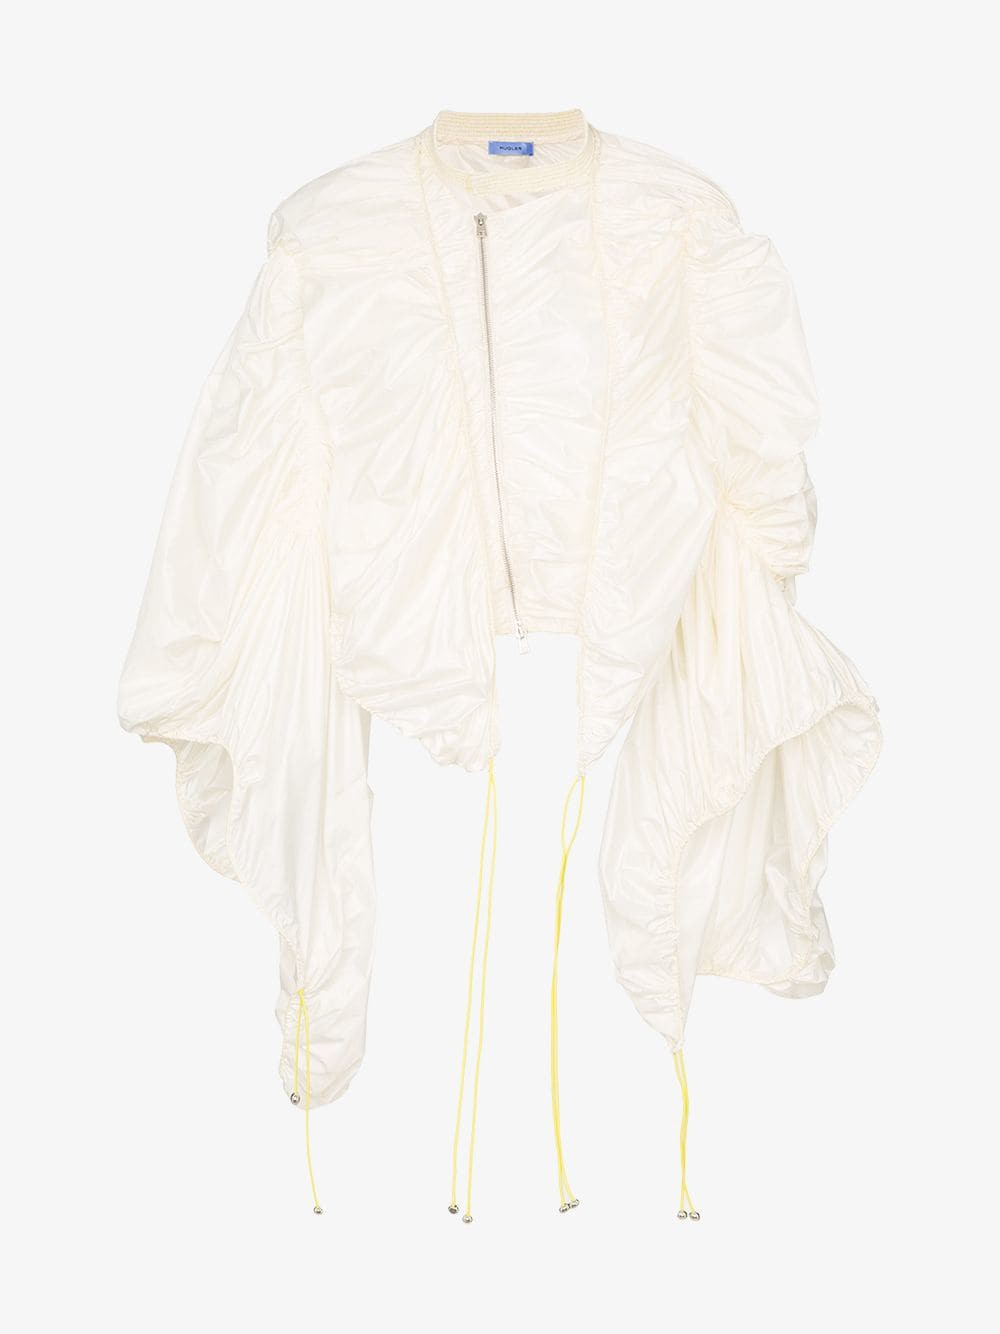 Mugler High-neck exaggerated sleeve zip-up jacket in white